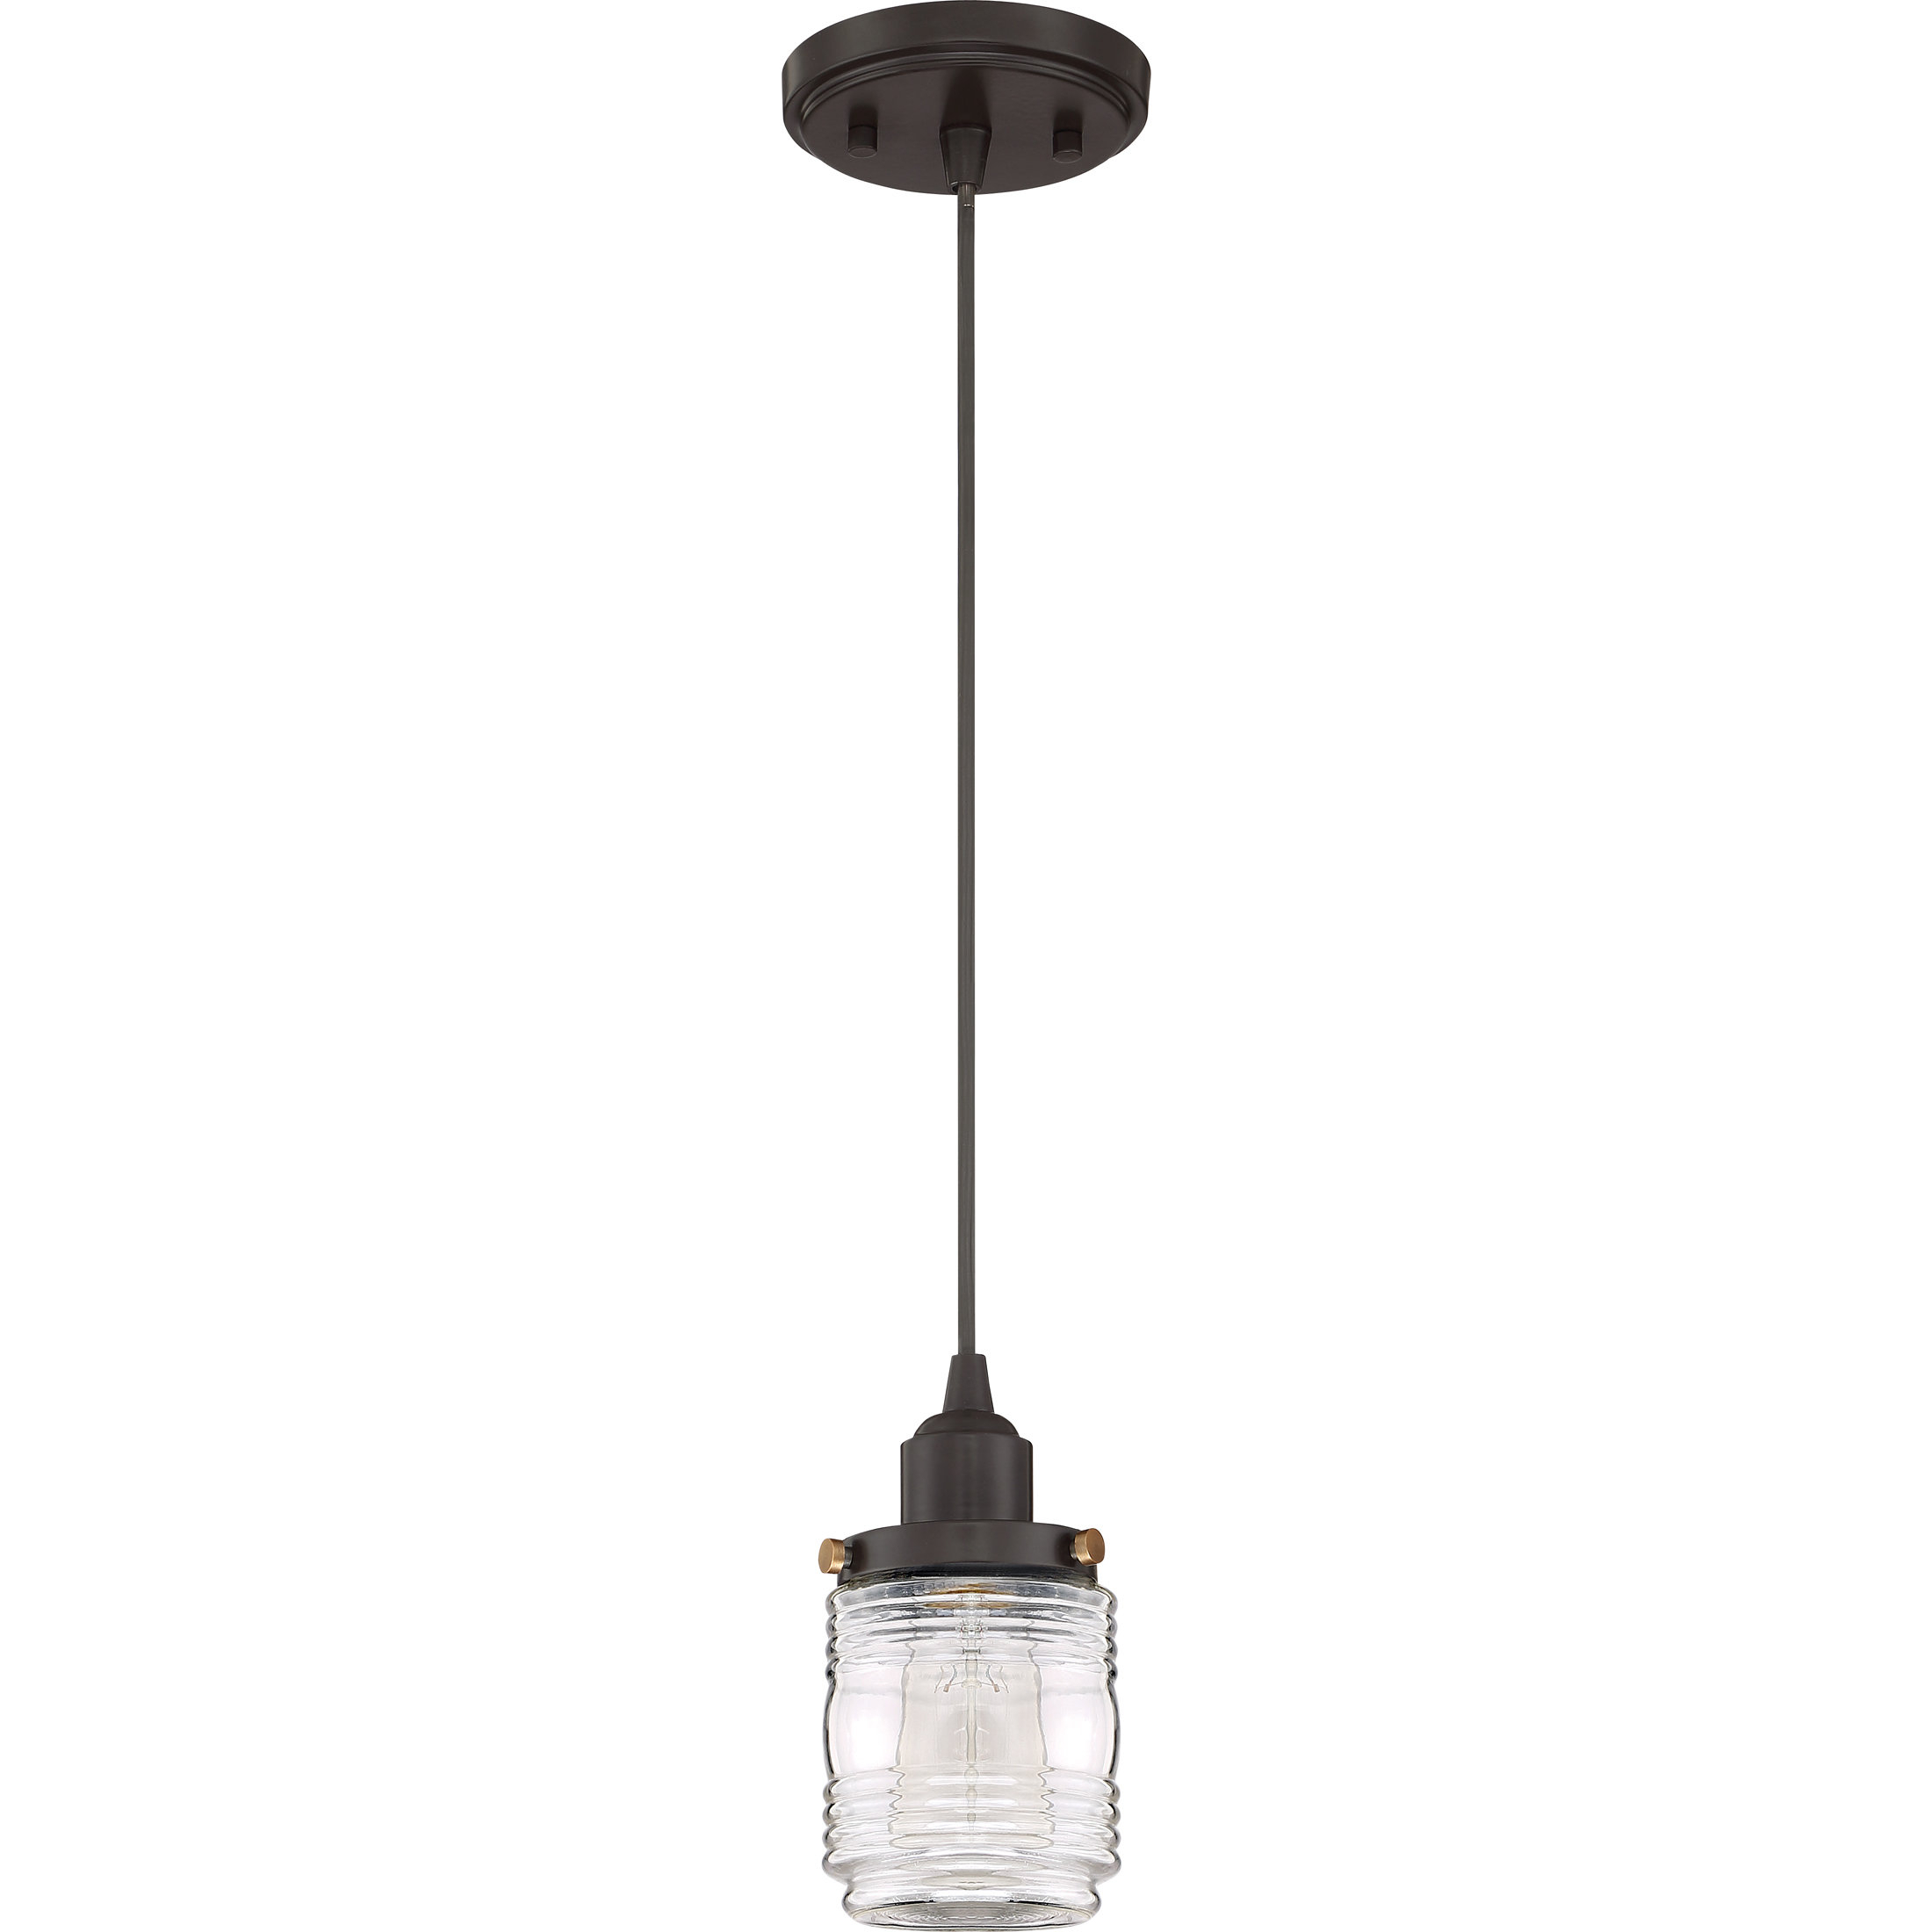 Burgess 1 Light Single Jar Pendant Within Widely Used Houon 1 Light Cone Bell Pendants (Gallery 14 of 20)